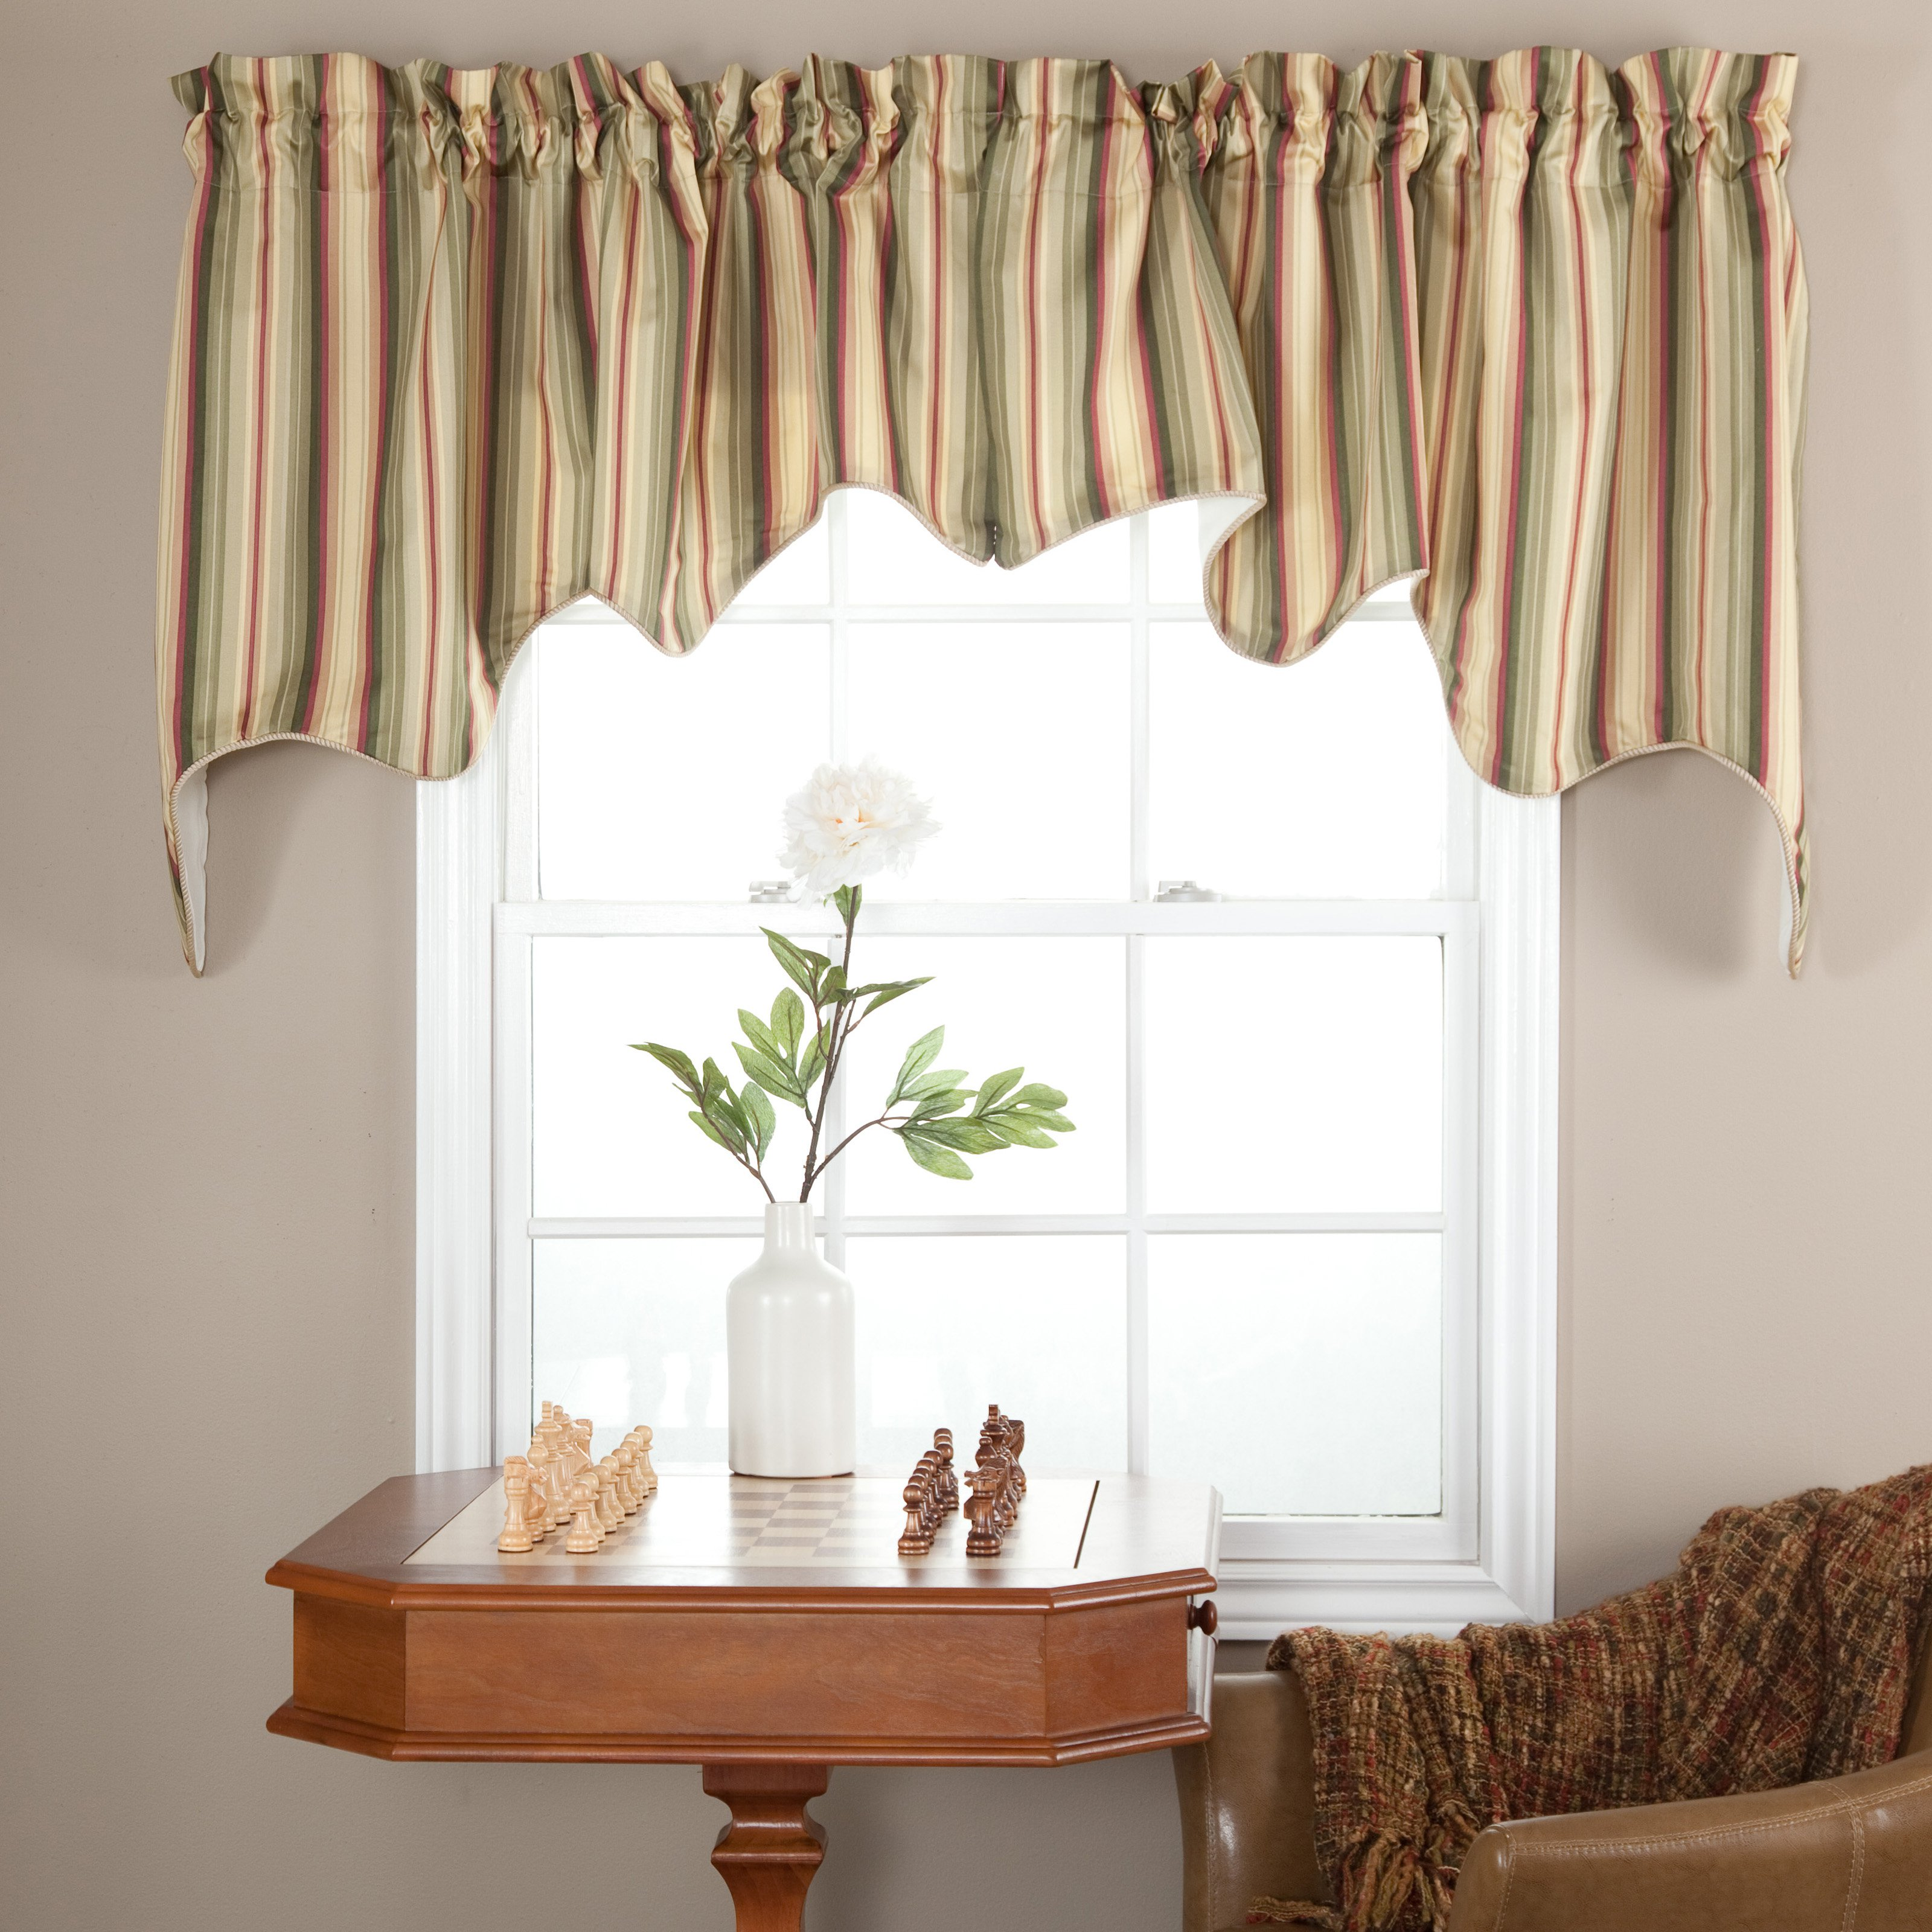 Ellis Curtain Mateo Stripe Lined Duchess Valance